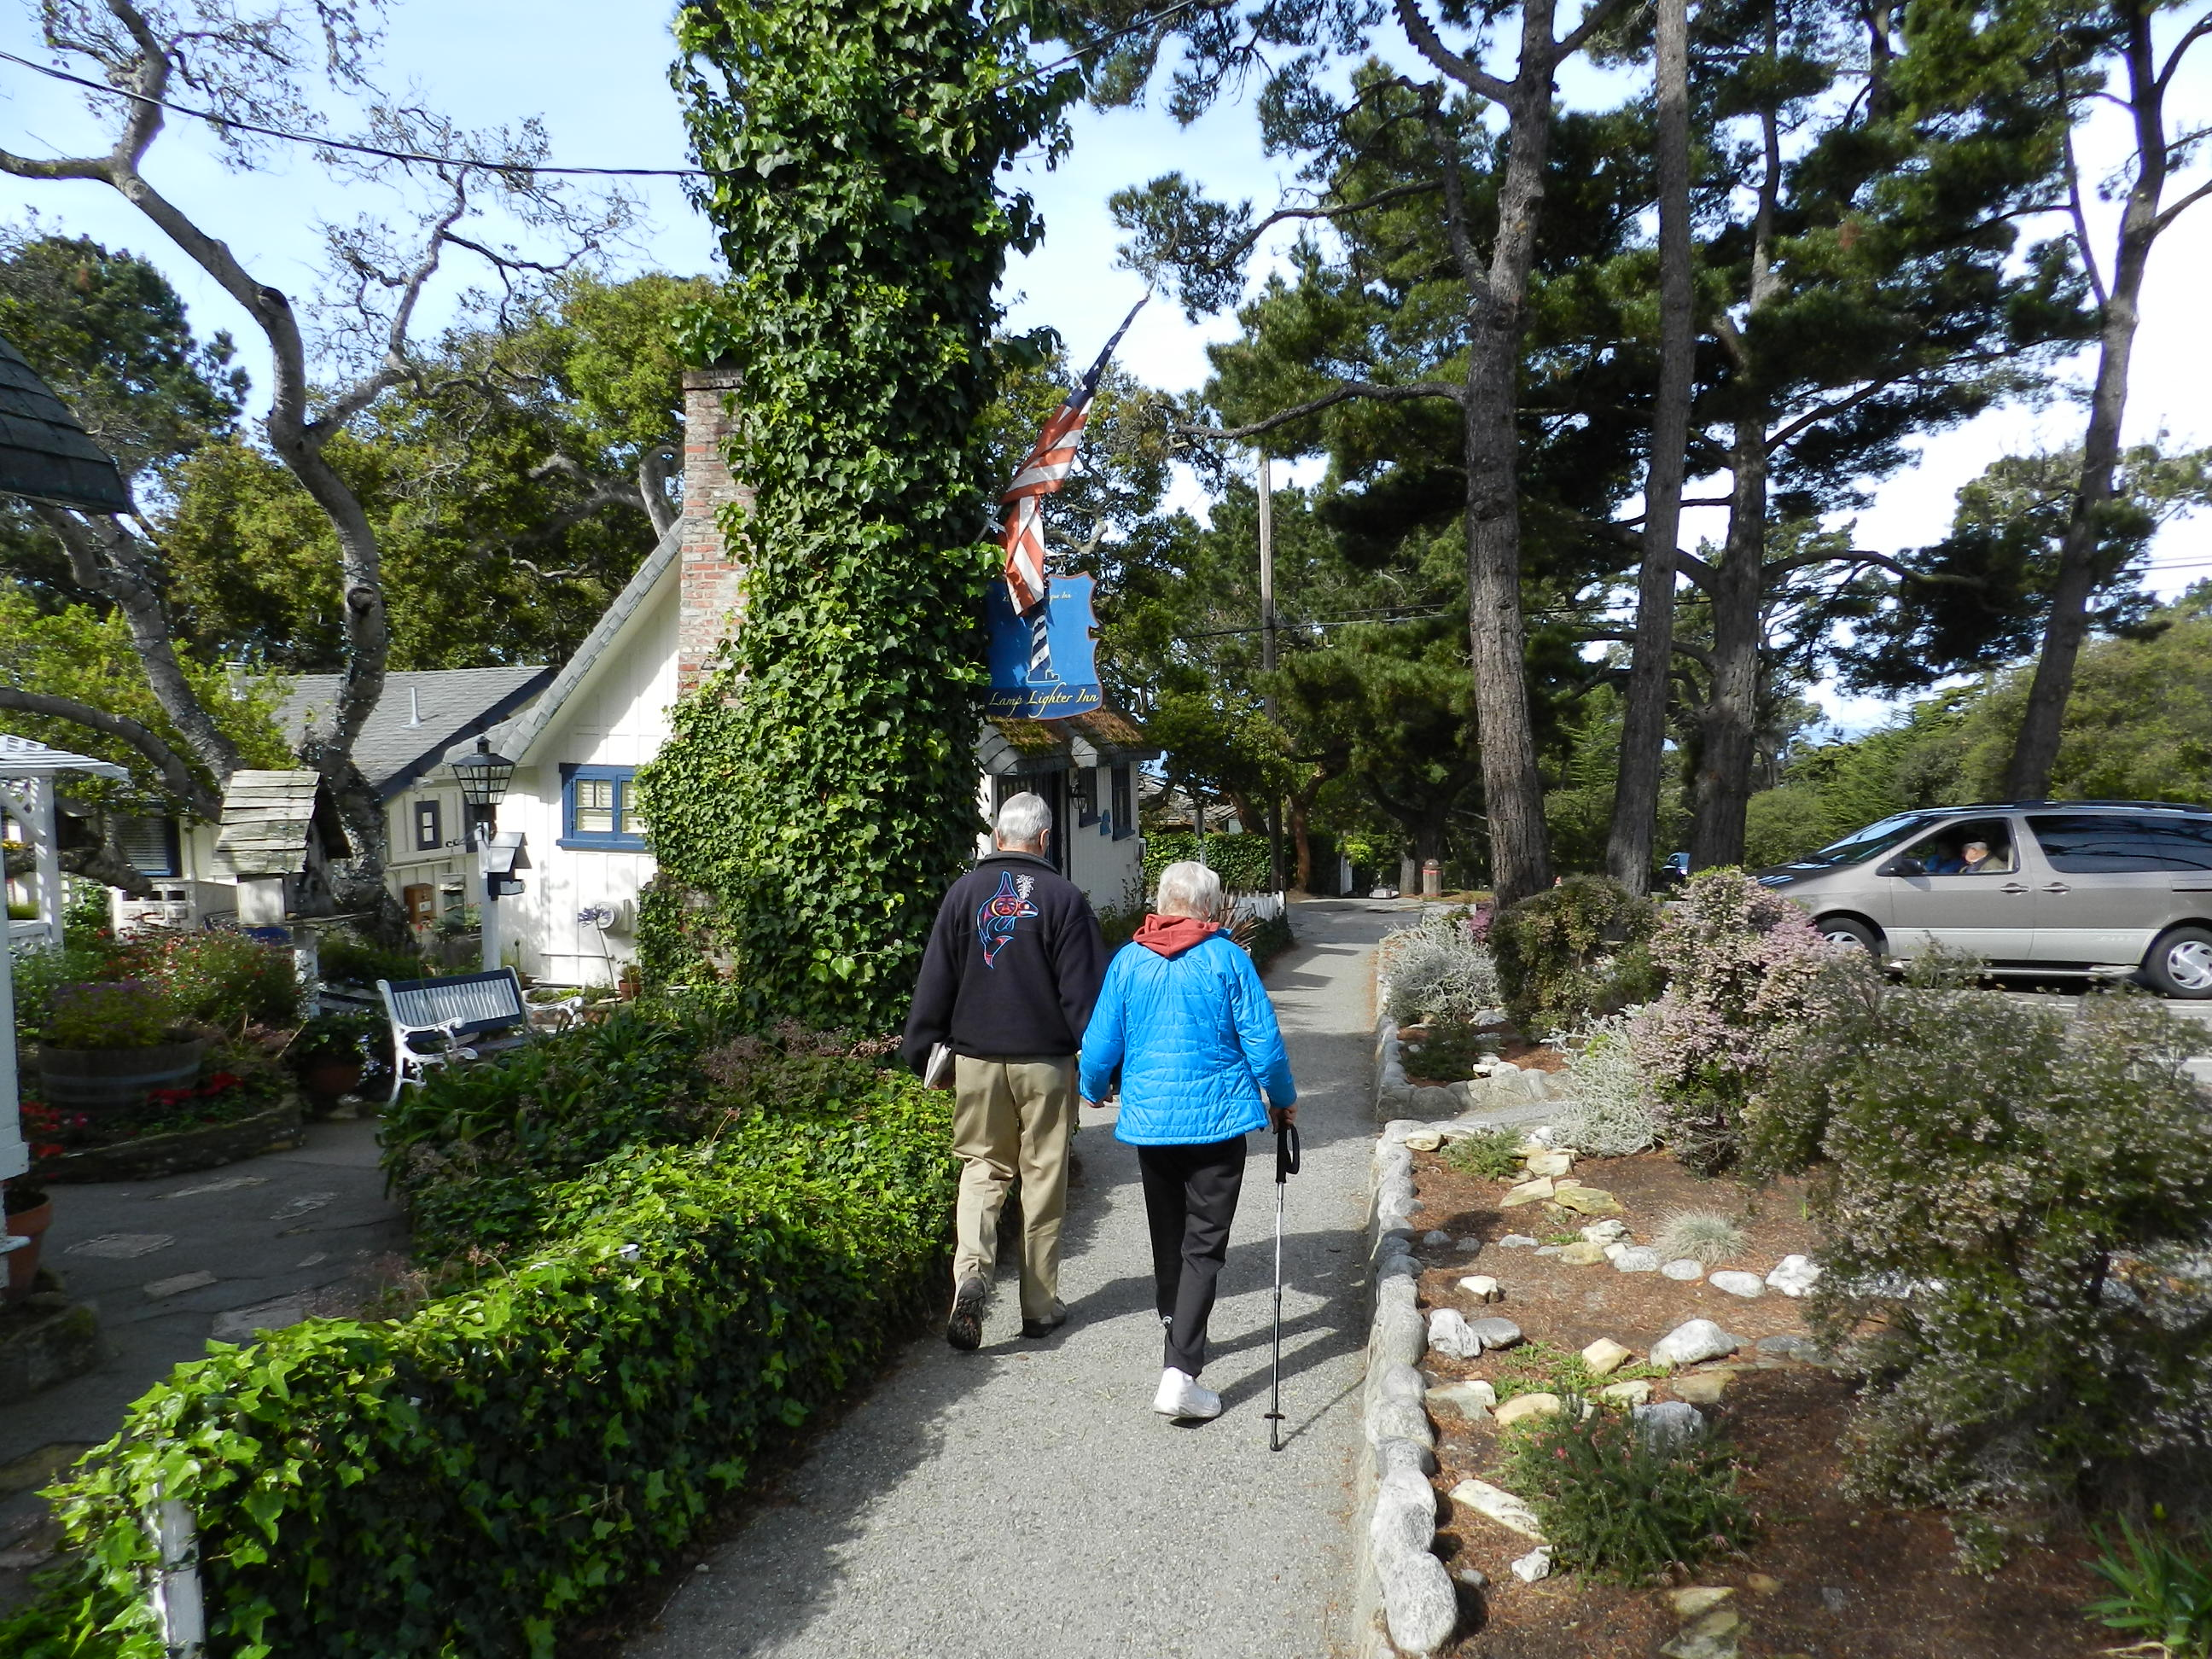 Carmel by the sea - highway 1 california dicas